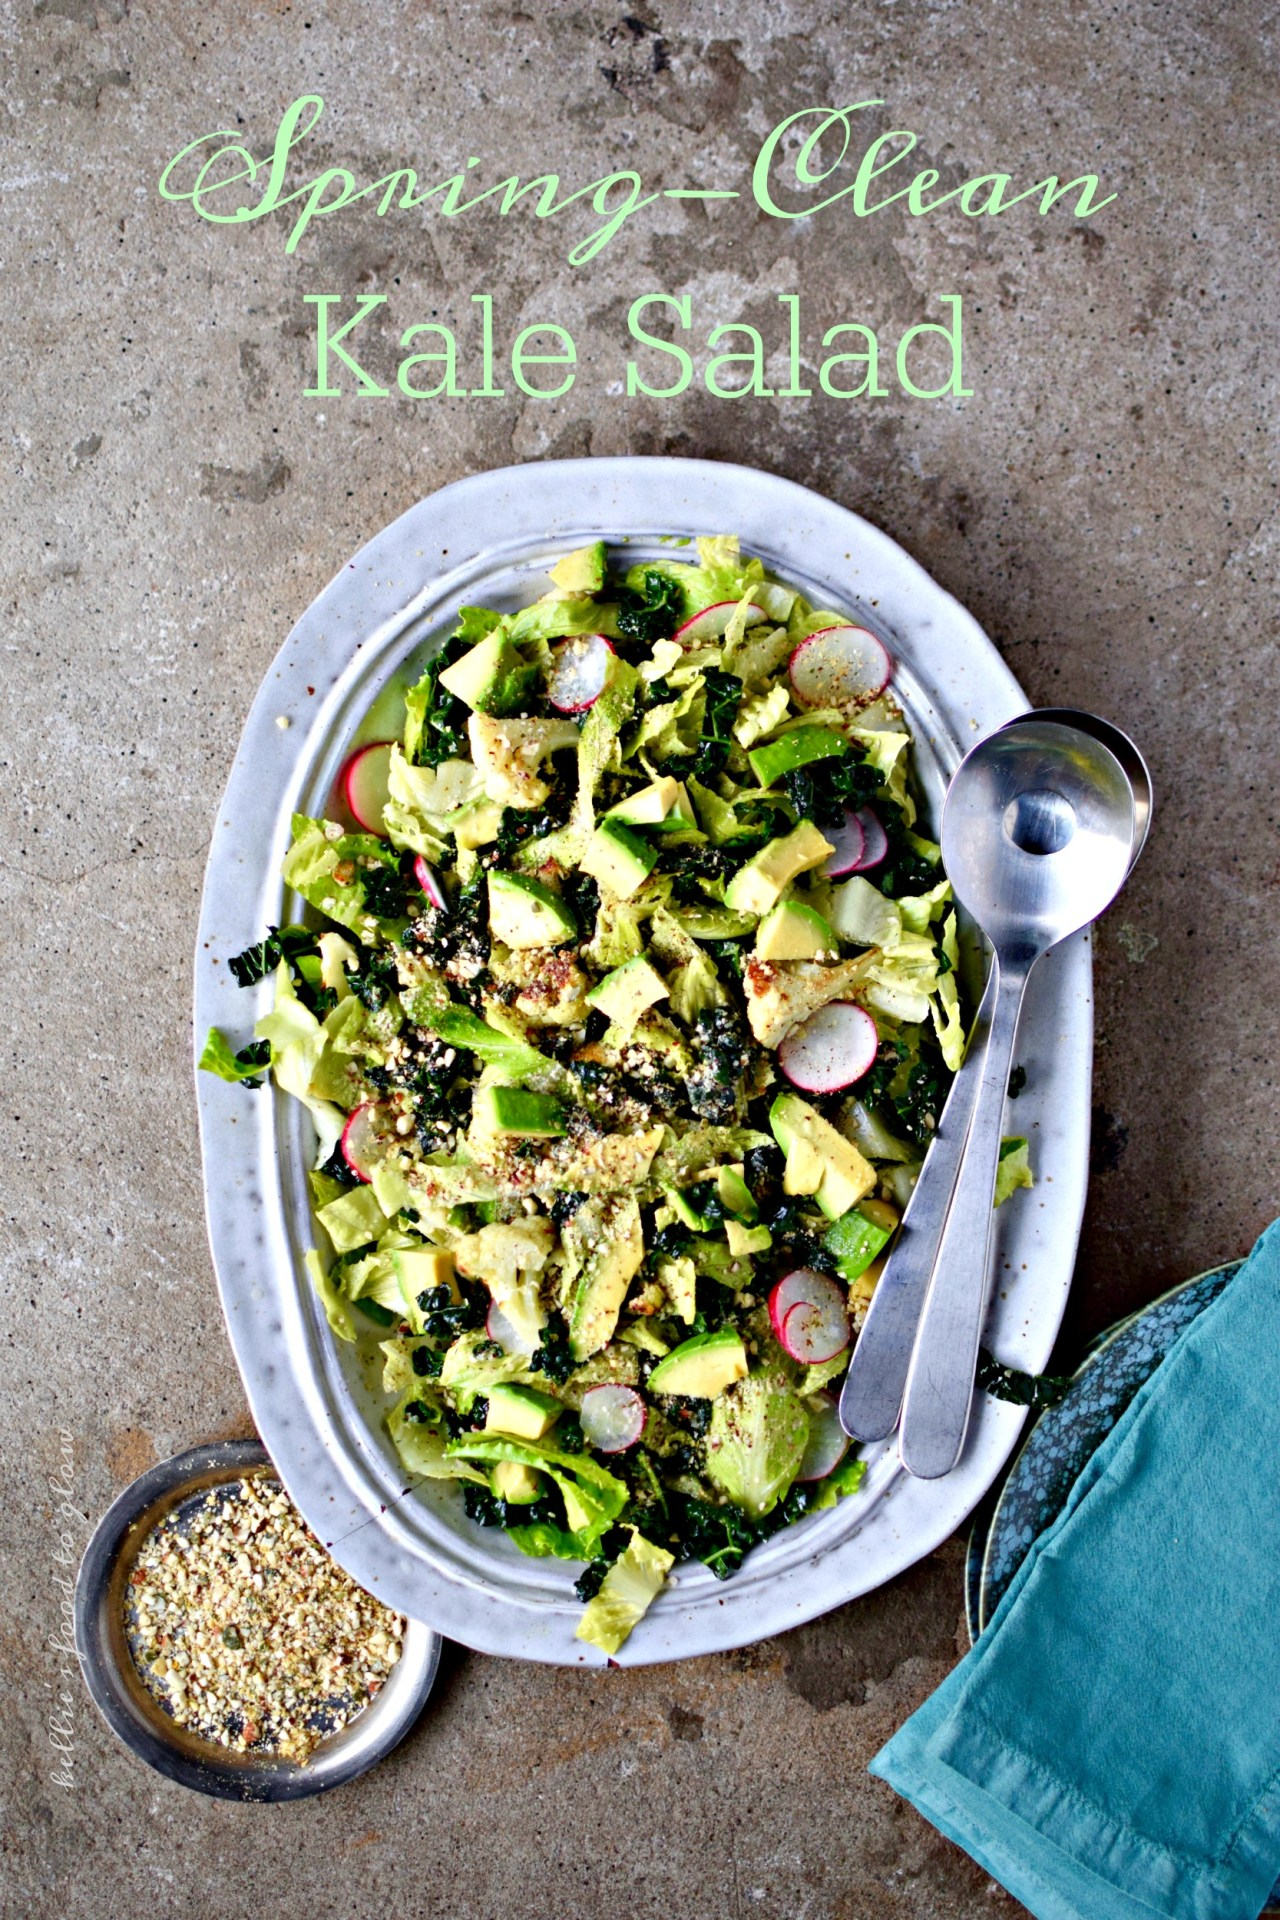 """Not a detox salad but a welcome to spring, summer and salads. Kale can be prepped the day before eating, then topped and dressed with the smoked oil vinaigrette and addictive nutty topping just before serving. This is perfect as a substantial side salad, or topped with your protein of choice for a """"meal salad"""". Add new potatoes or asparagus in spring, and pan-roasted sweetcorn in the height of summer."""